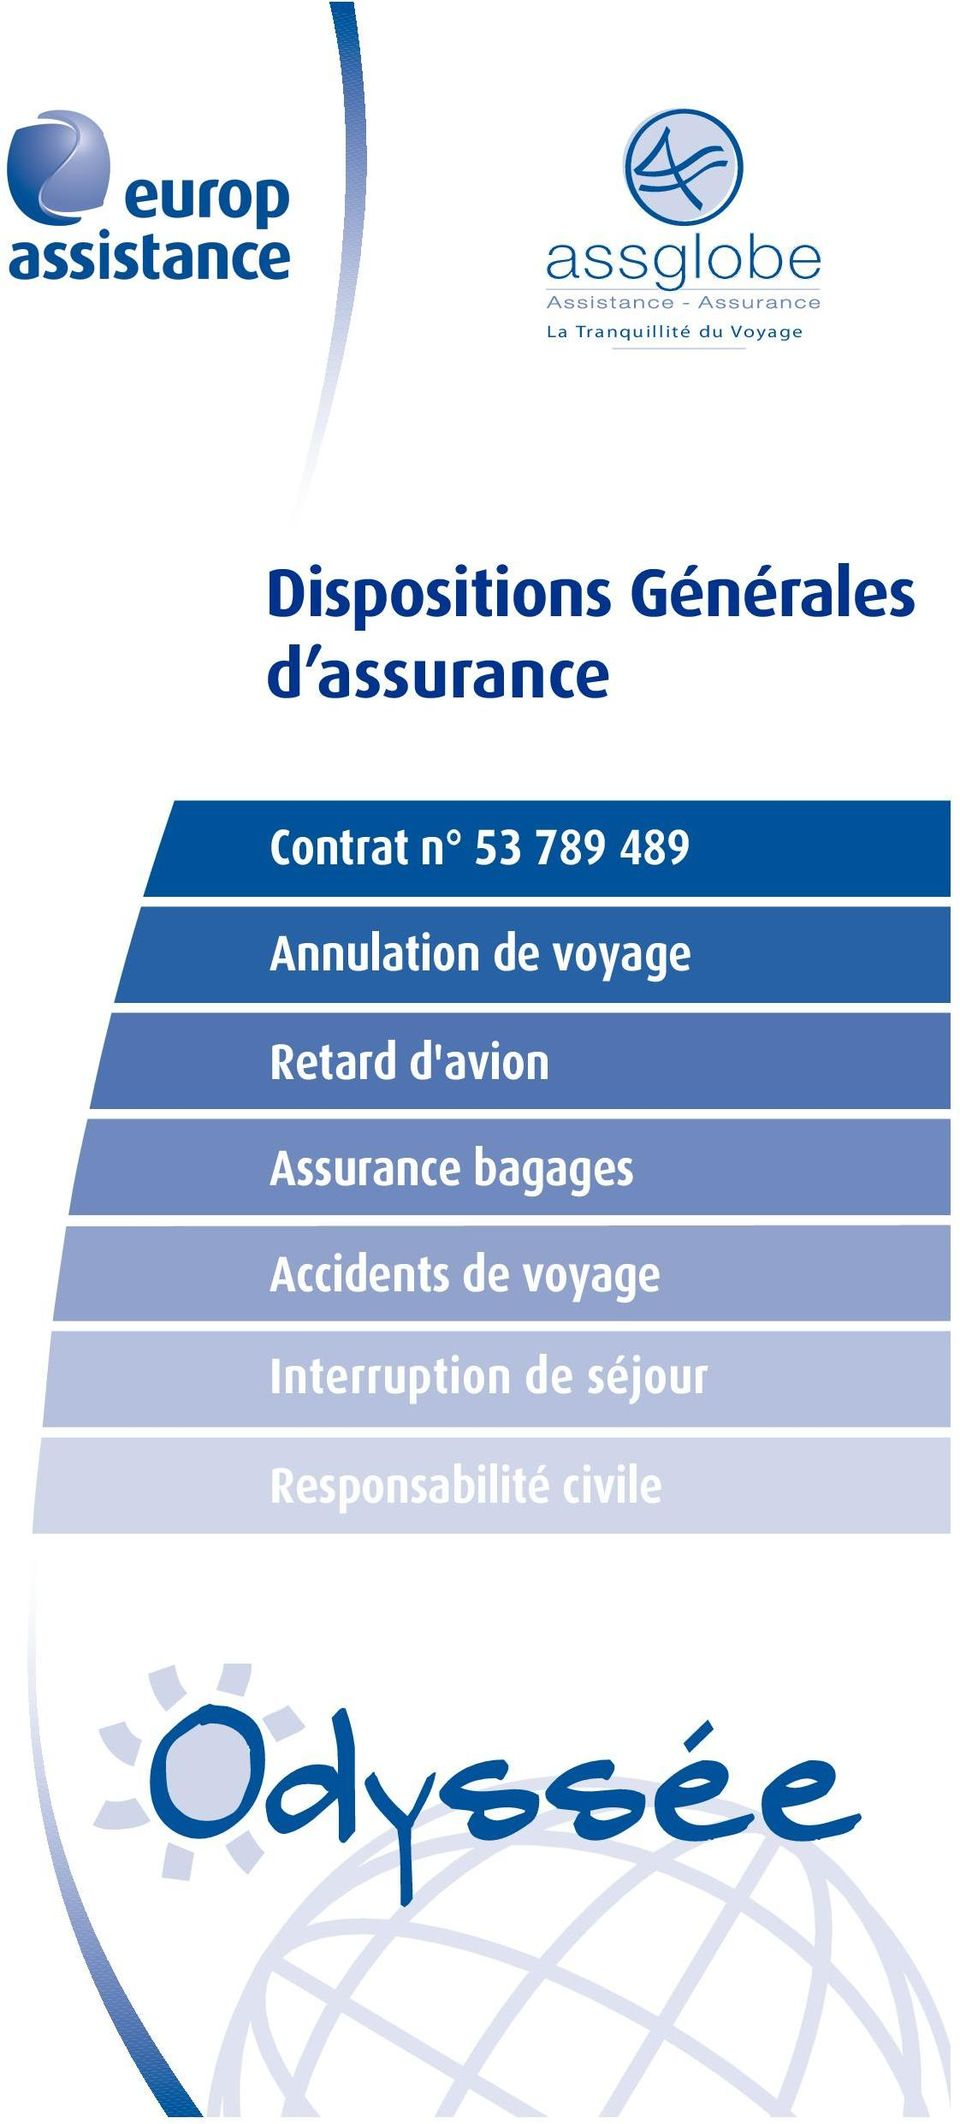 voyage Retard d'avion Assurance bagages Accidents